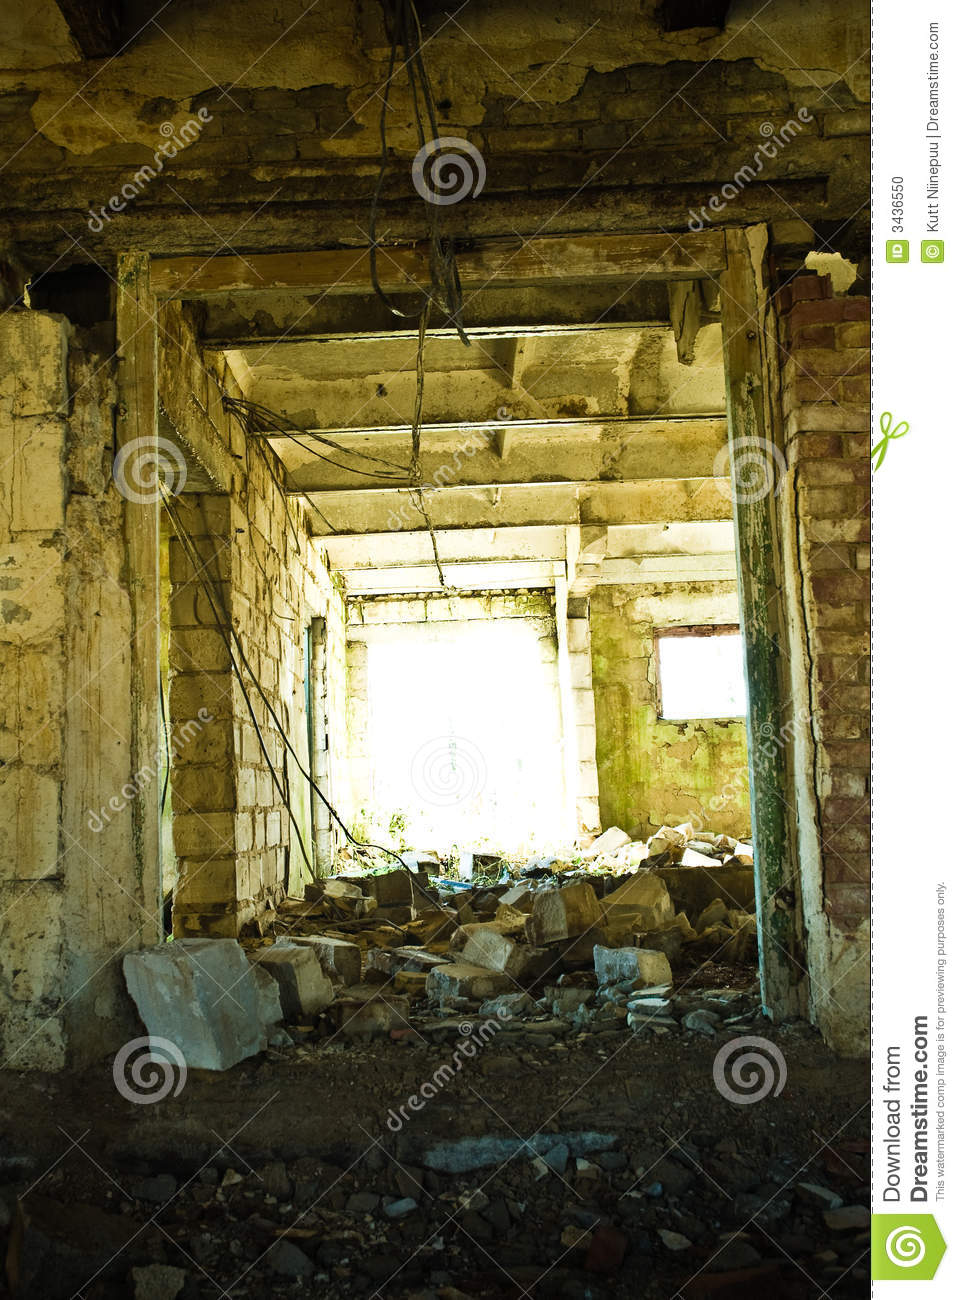 Download Trash In Abandoned Cow Barn Stock Photo - Image of indoors, decaying: 3436550